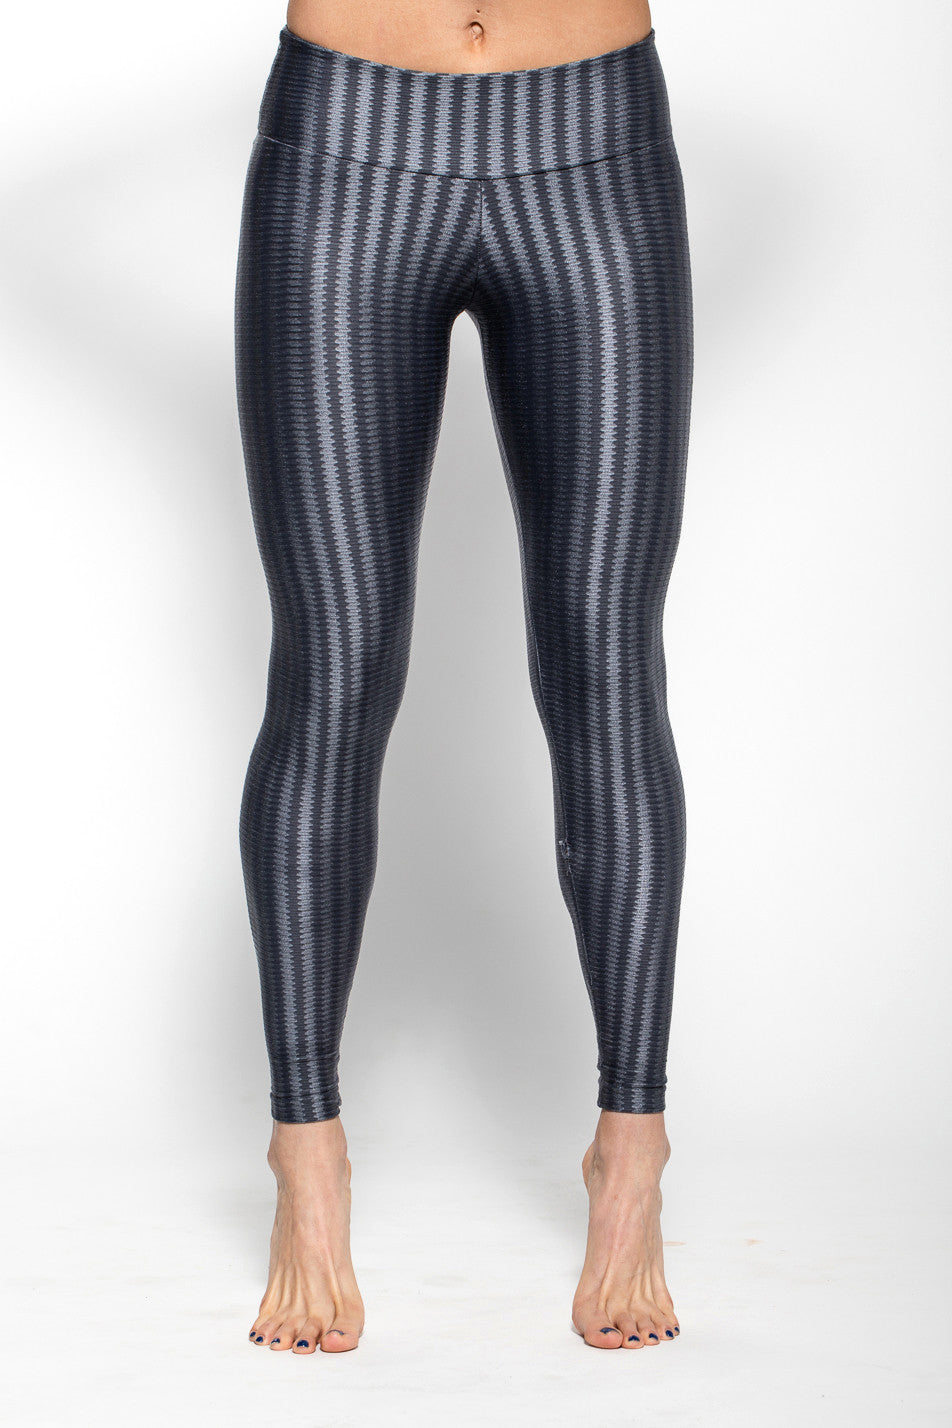 Mika Legging - Foxy Gray